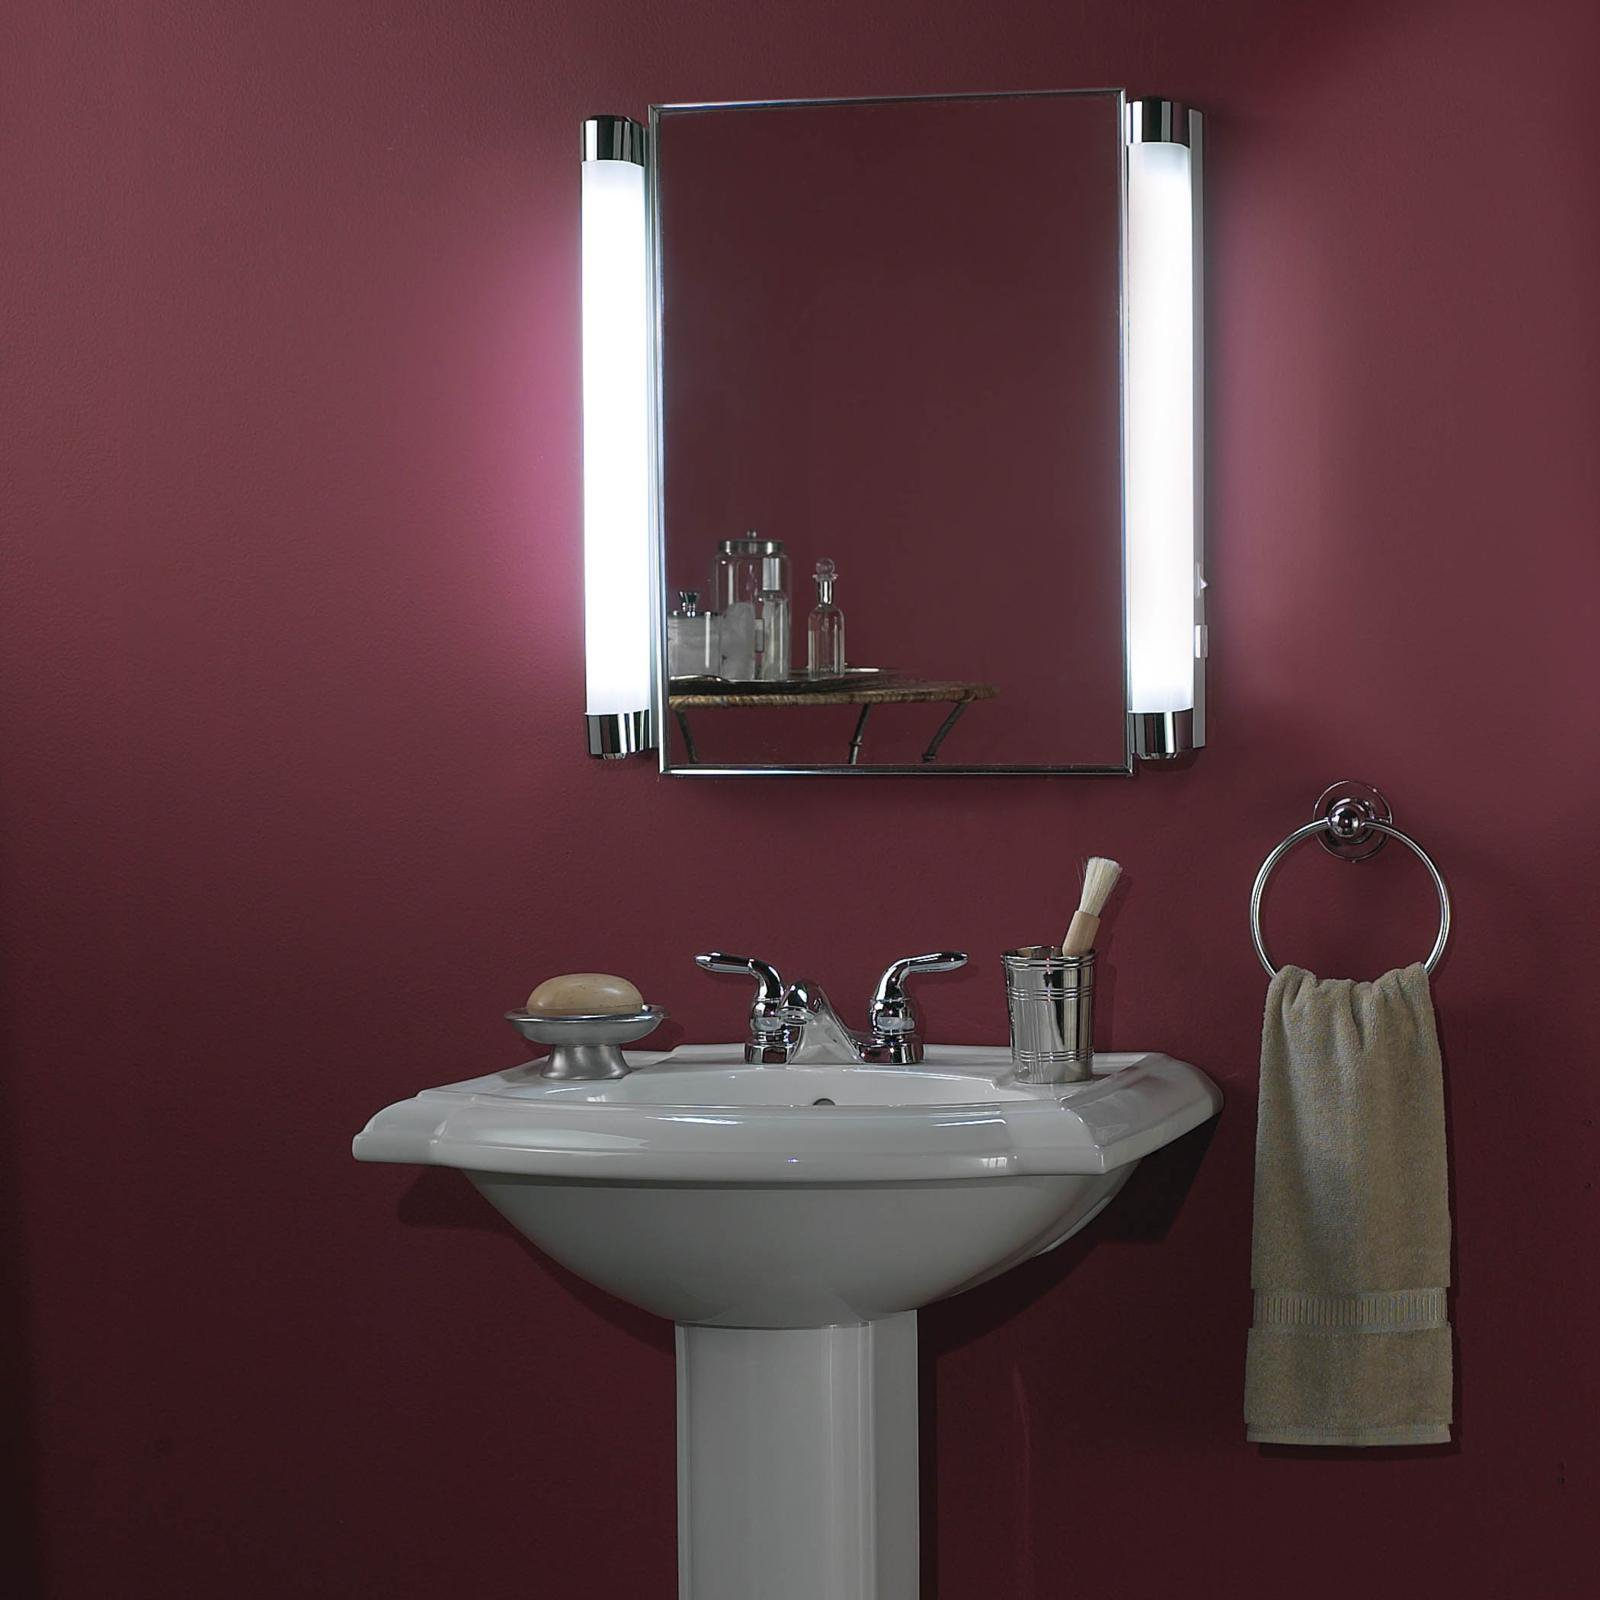 bathroom mirrors with in cabinet built depot home medicine and lights electrical cabinets outlet